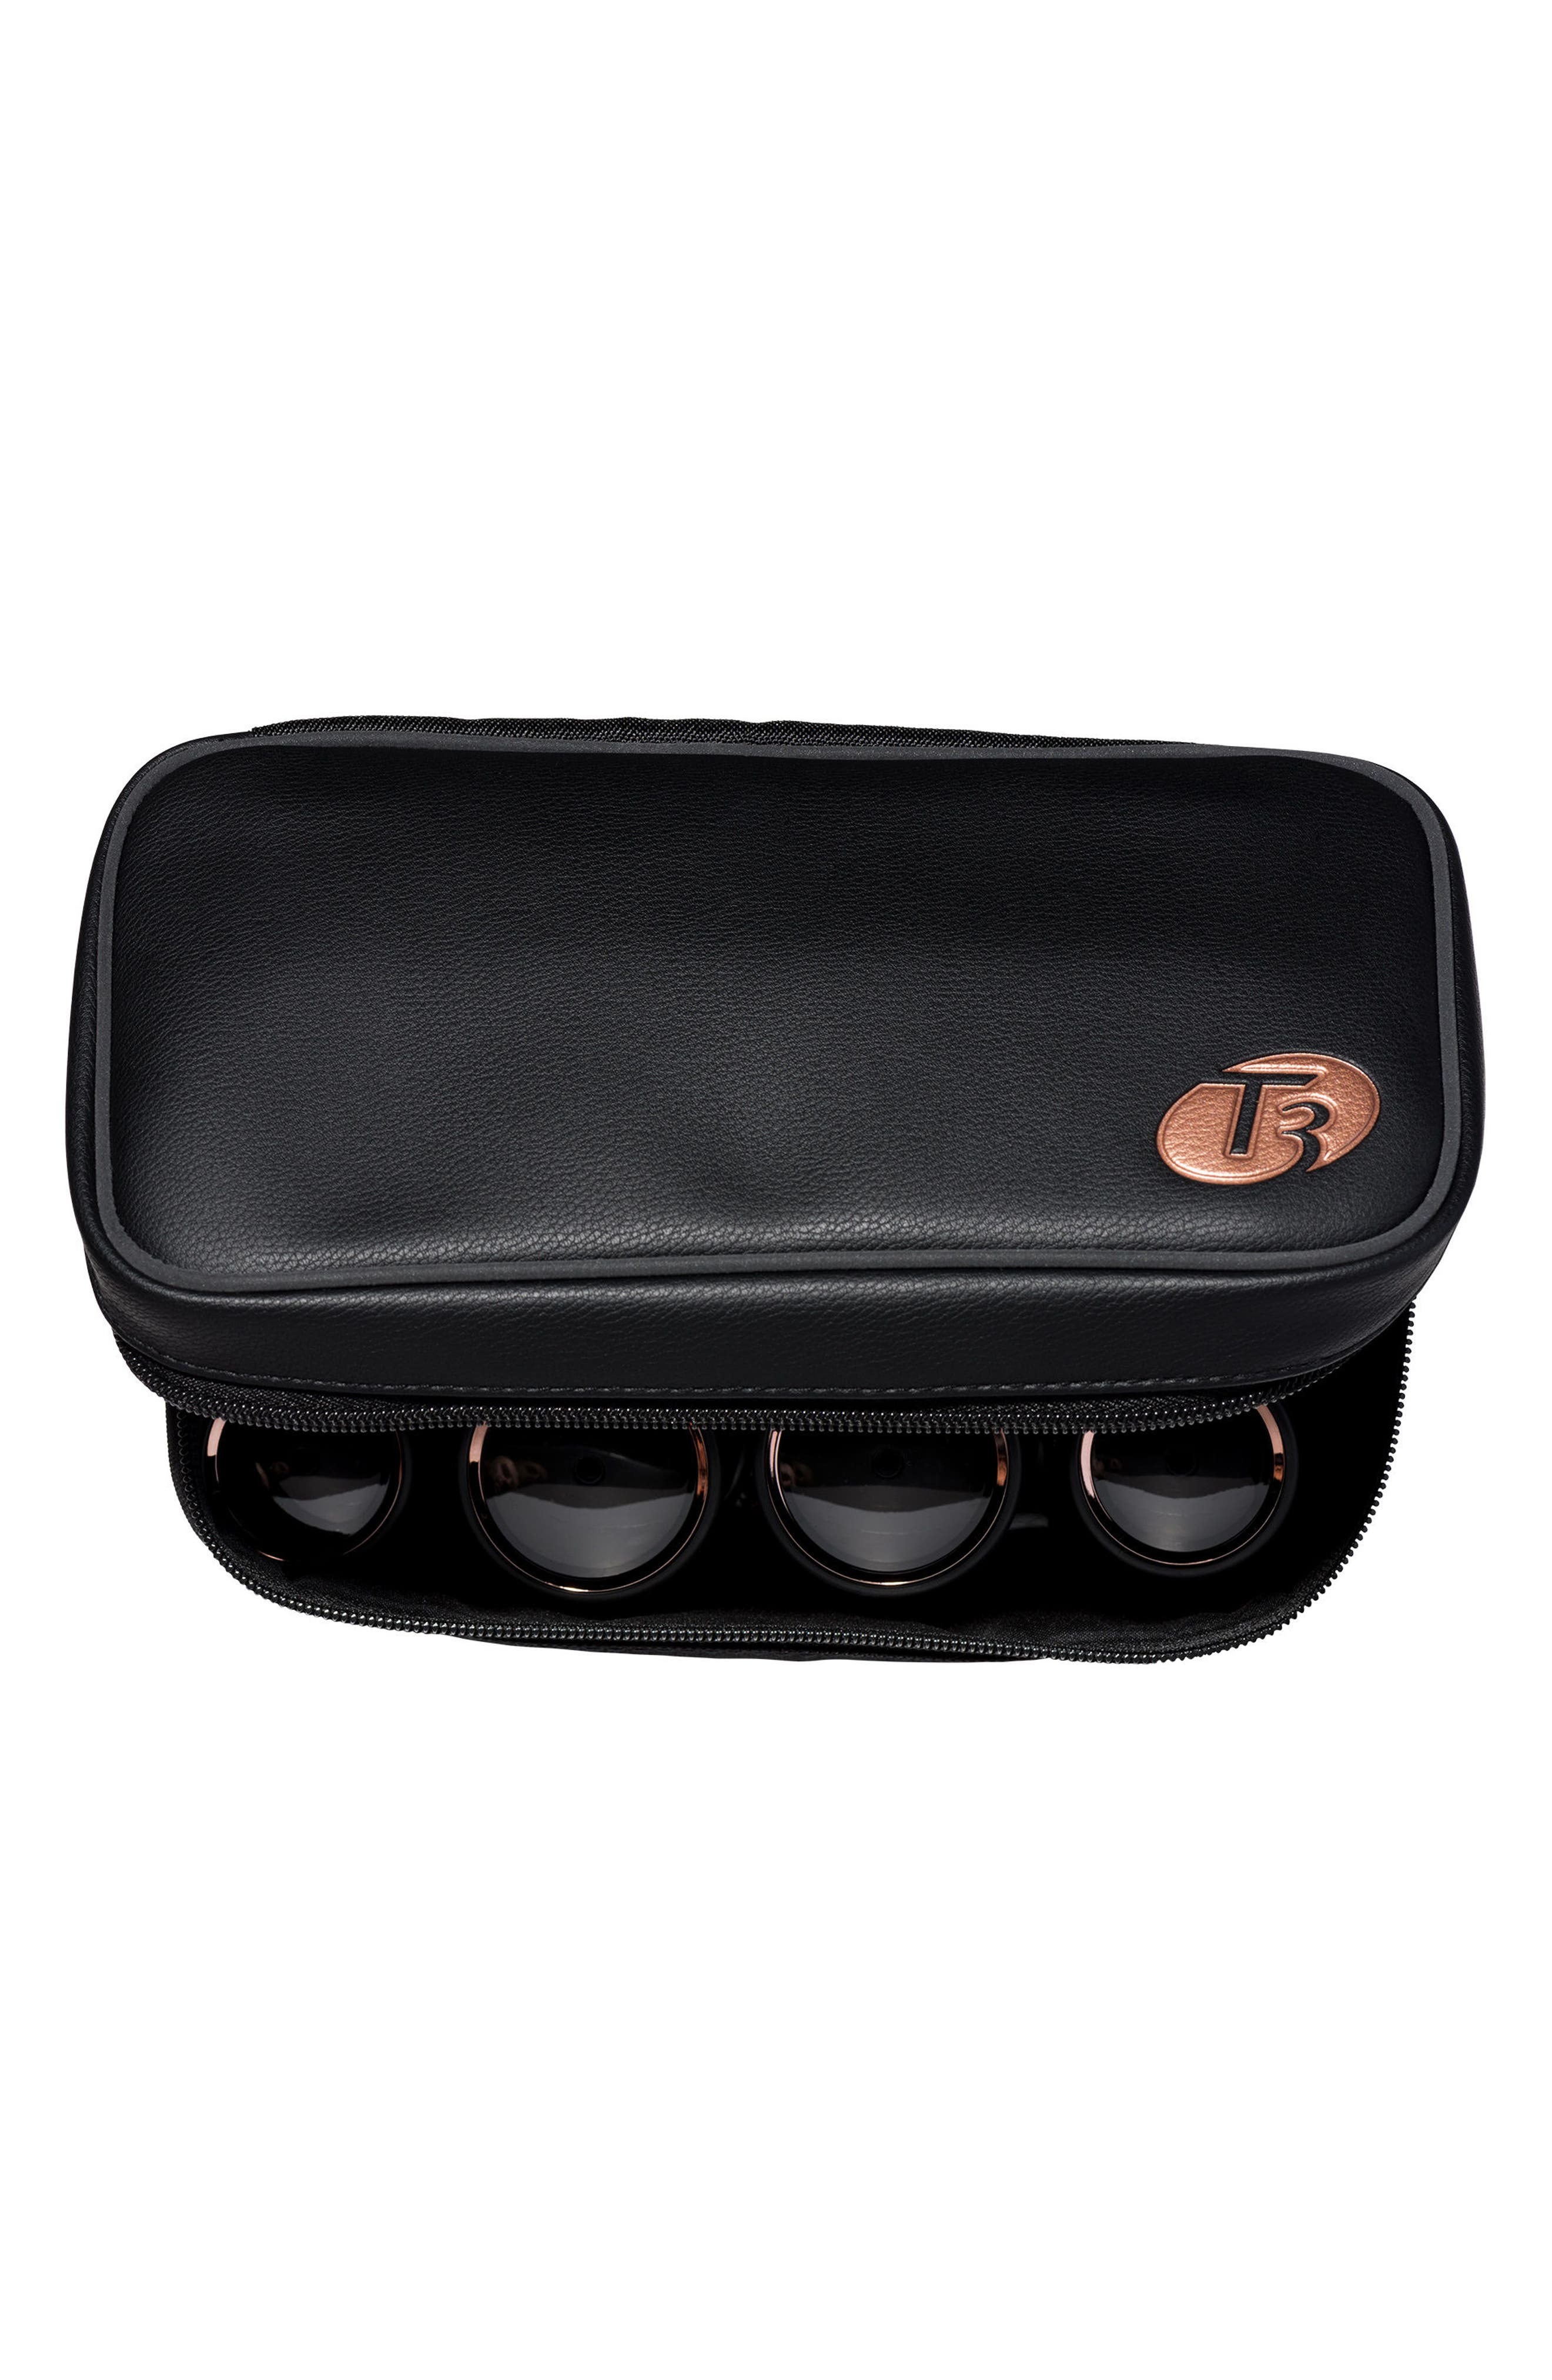 T3, Volumizing Hot Rollers LUXE for Volume, Body and Shine, Alternate thumbnail 6, color, NO COLOR